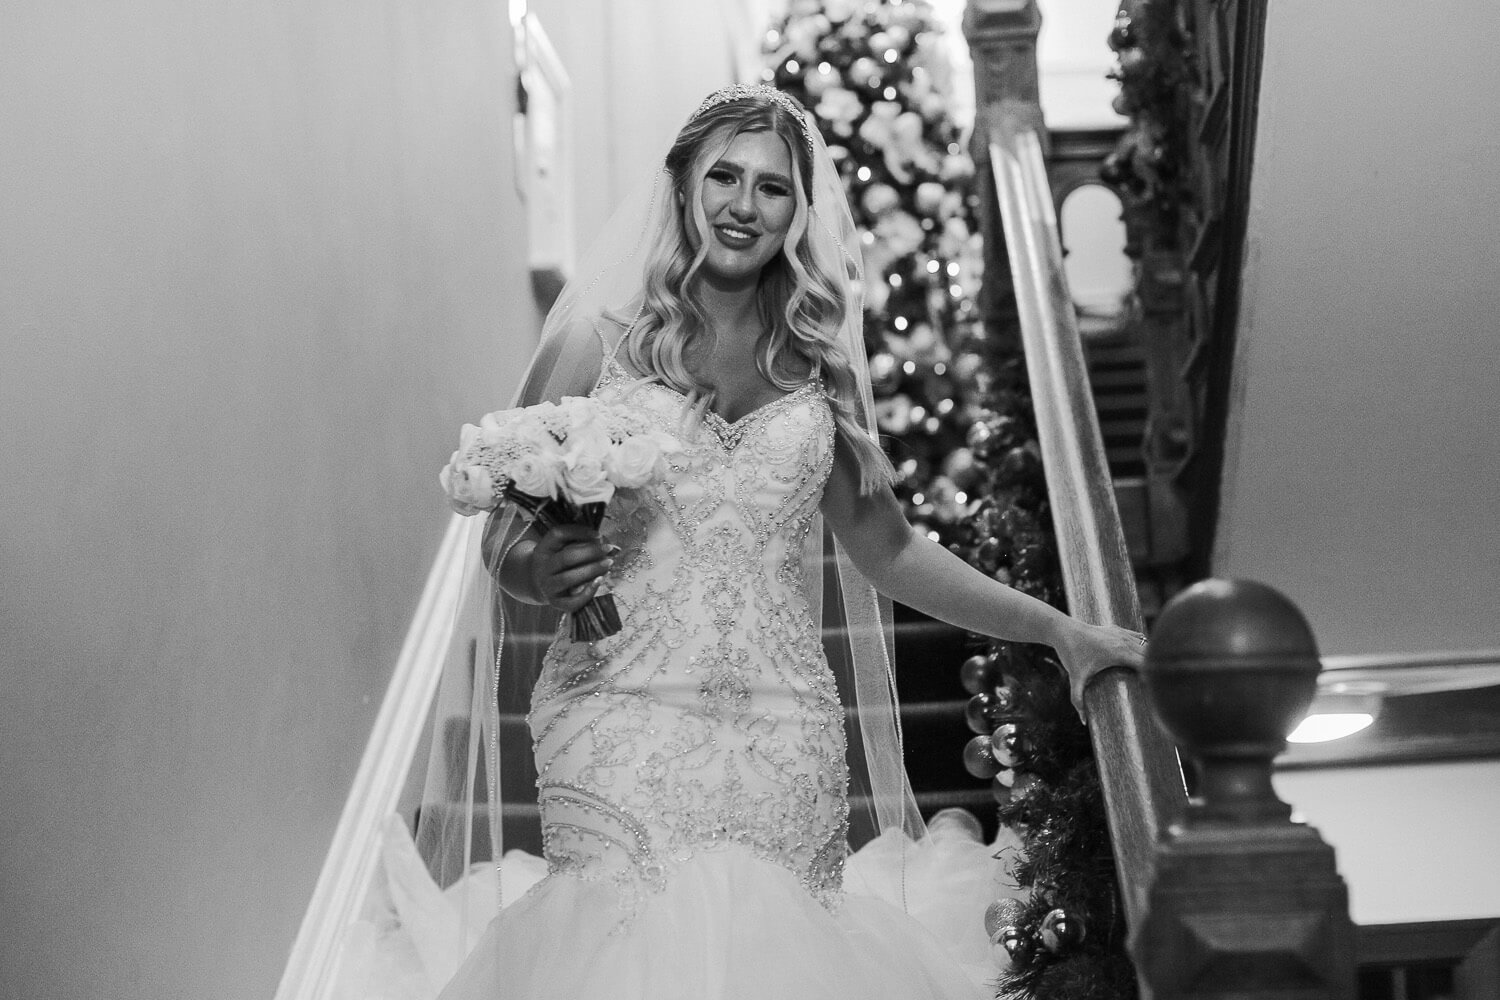 Bride coming down the stairs at WesT tower winter wedding